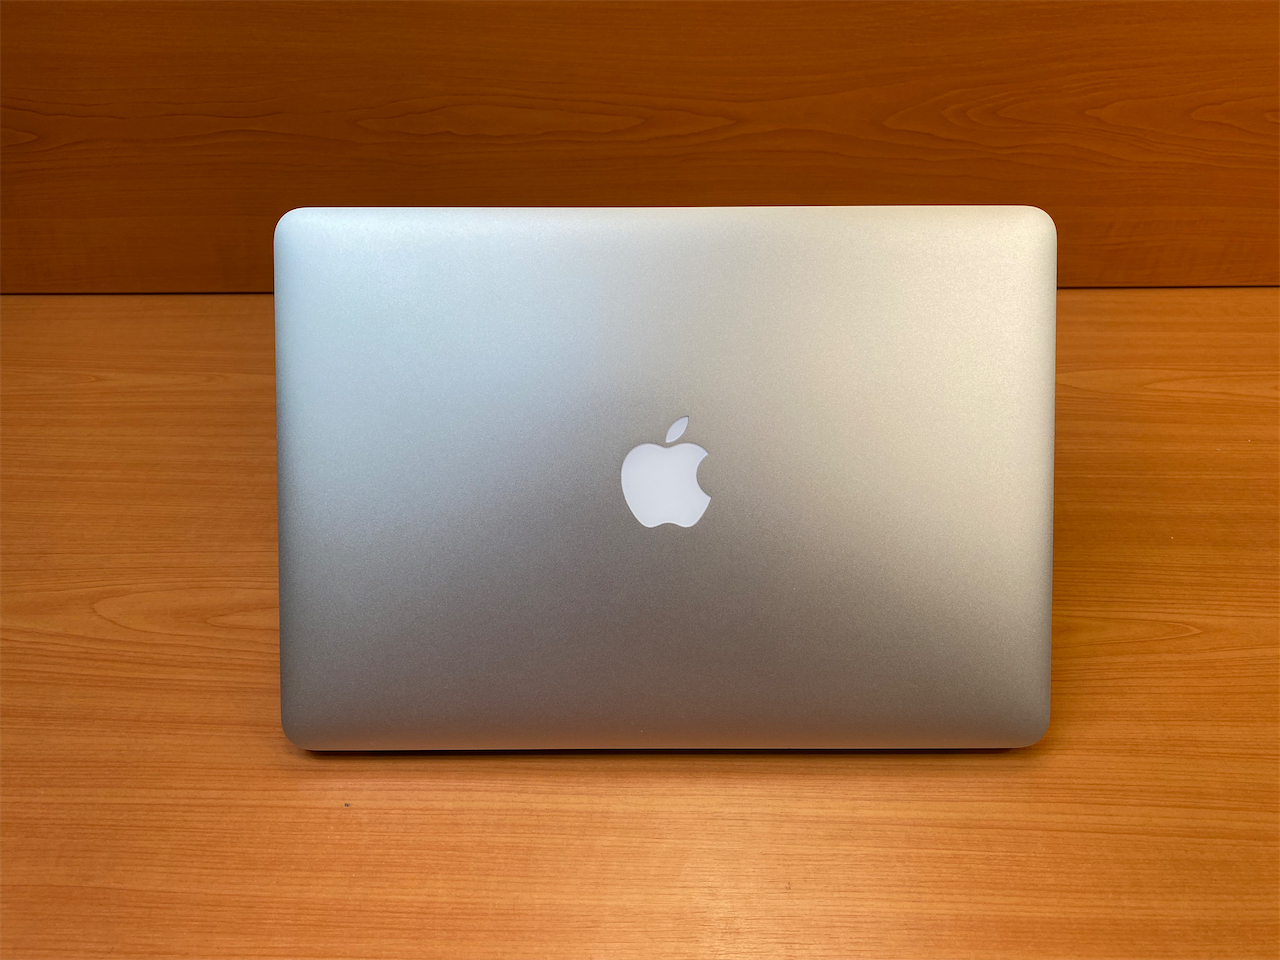 13 Apple MacBook Air BroadWell 2015 ID: 2084404